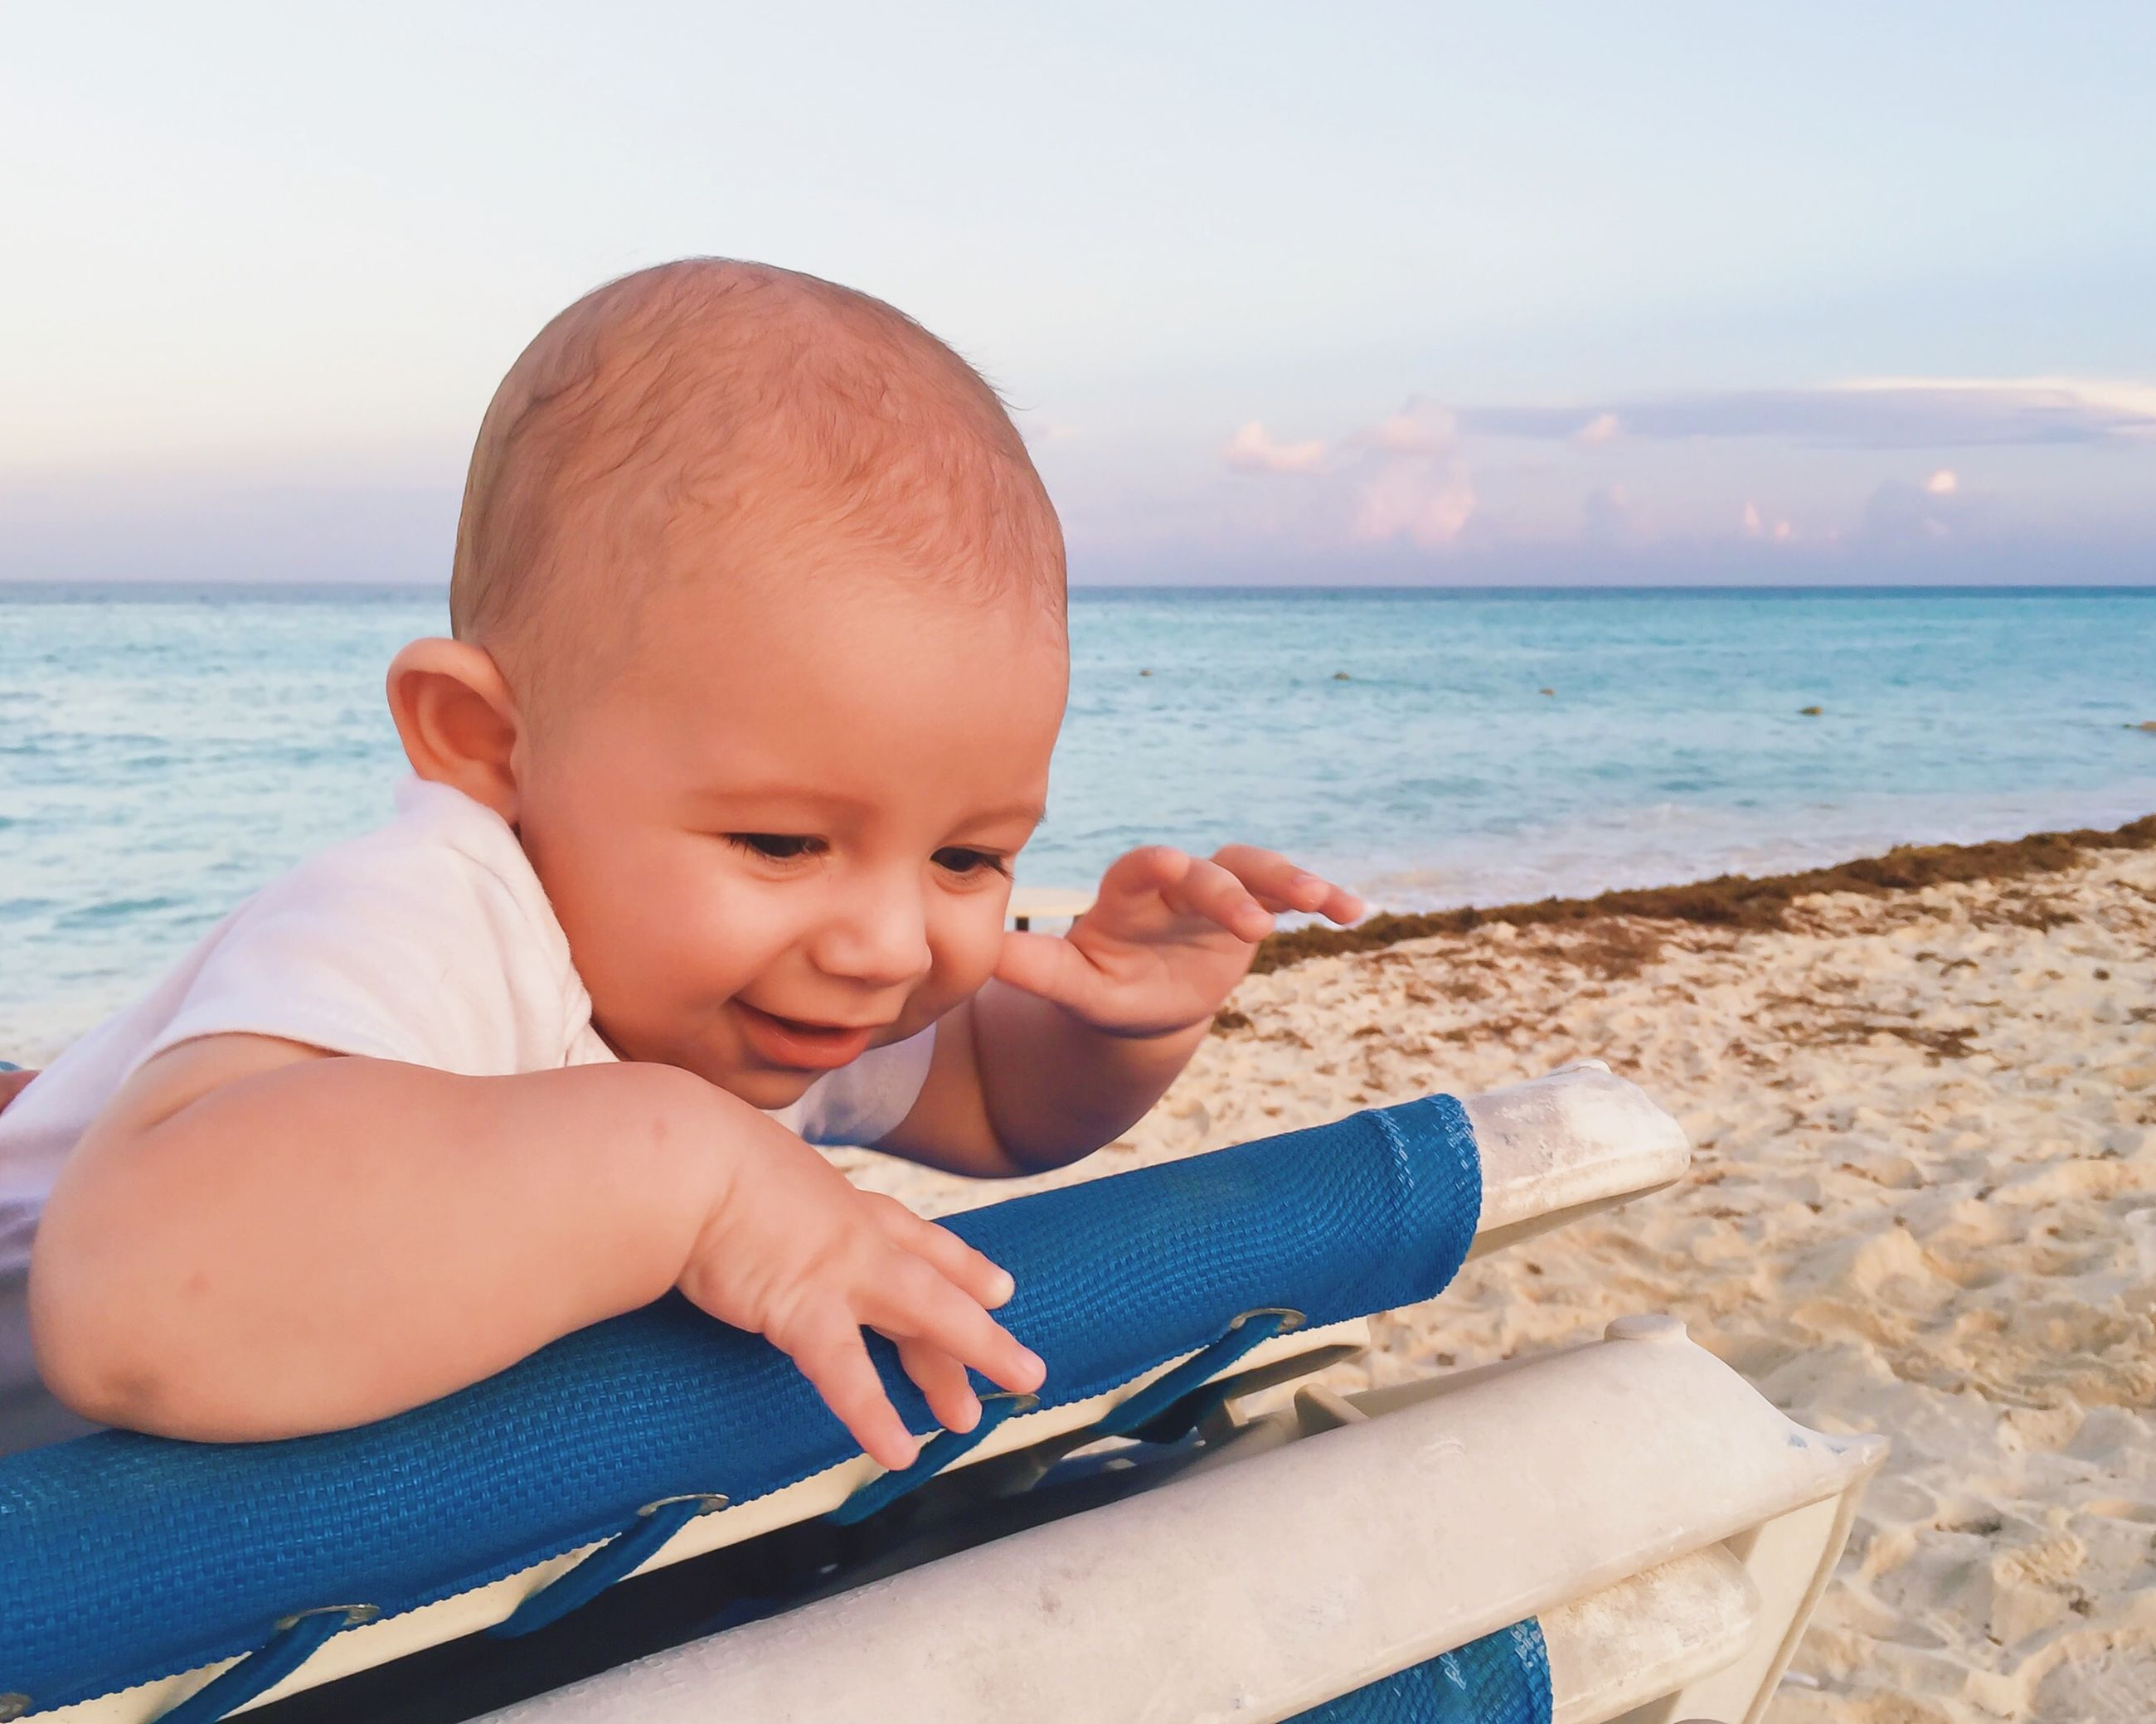 childhood, sea, beach, elementary age, innocence, horizon over water, water, cute, person, boys, leisure activity, lifestyles, toddler, baby, shore, babyhood, girls, shirtless